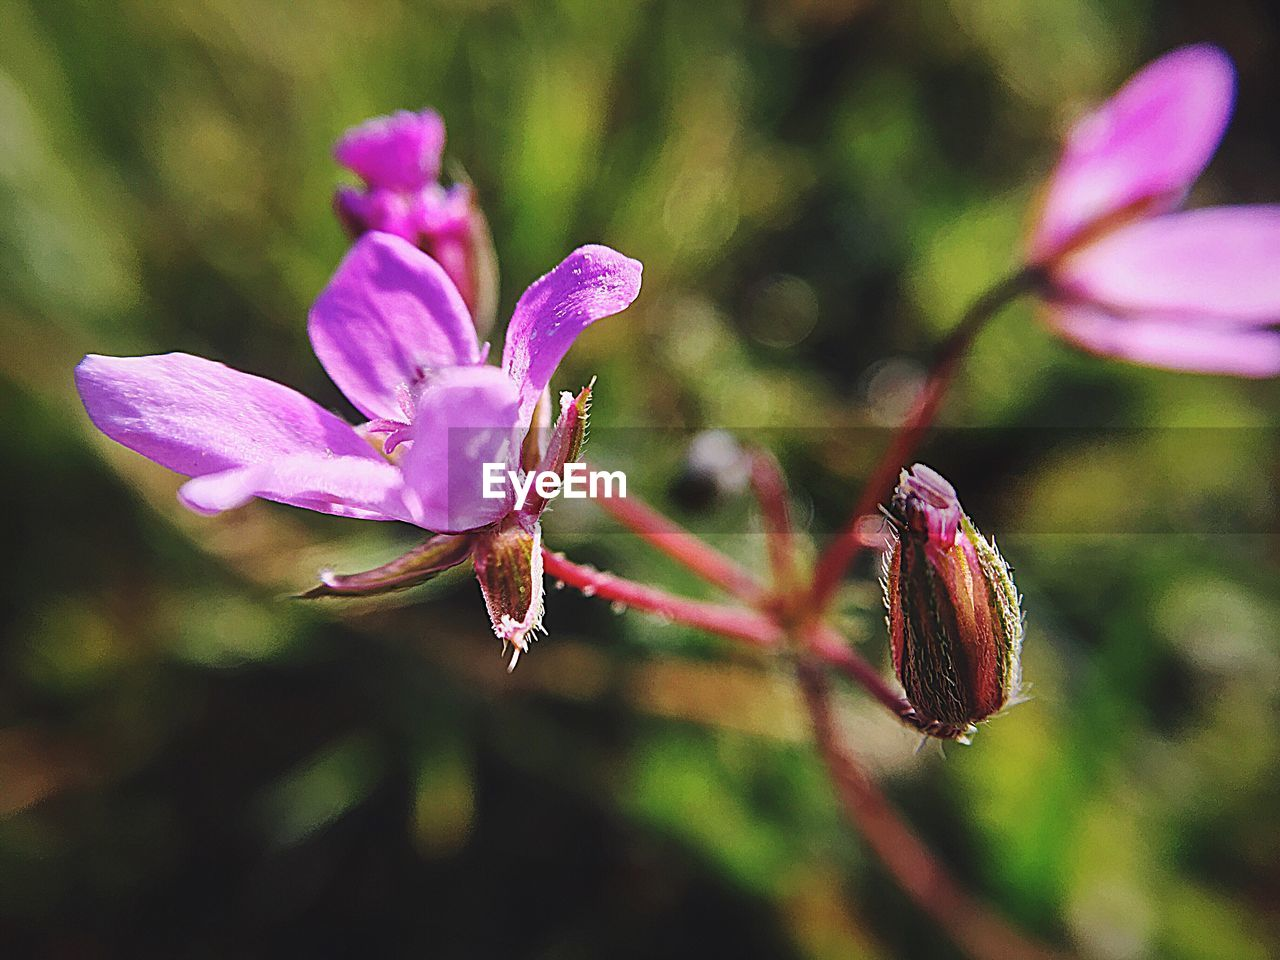 flower, flowering plant, plant, vulnerability, beauty in nature, fragility, freshness, growth, petal, close-up, pink color, flower head, inflorescence, focus on foreground, nature, no people, purple, day, selective focus, pollen, outdoors, springtime, pollination